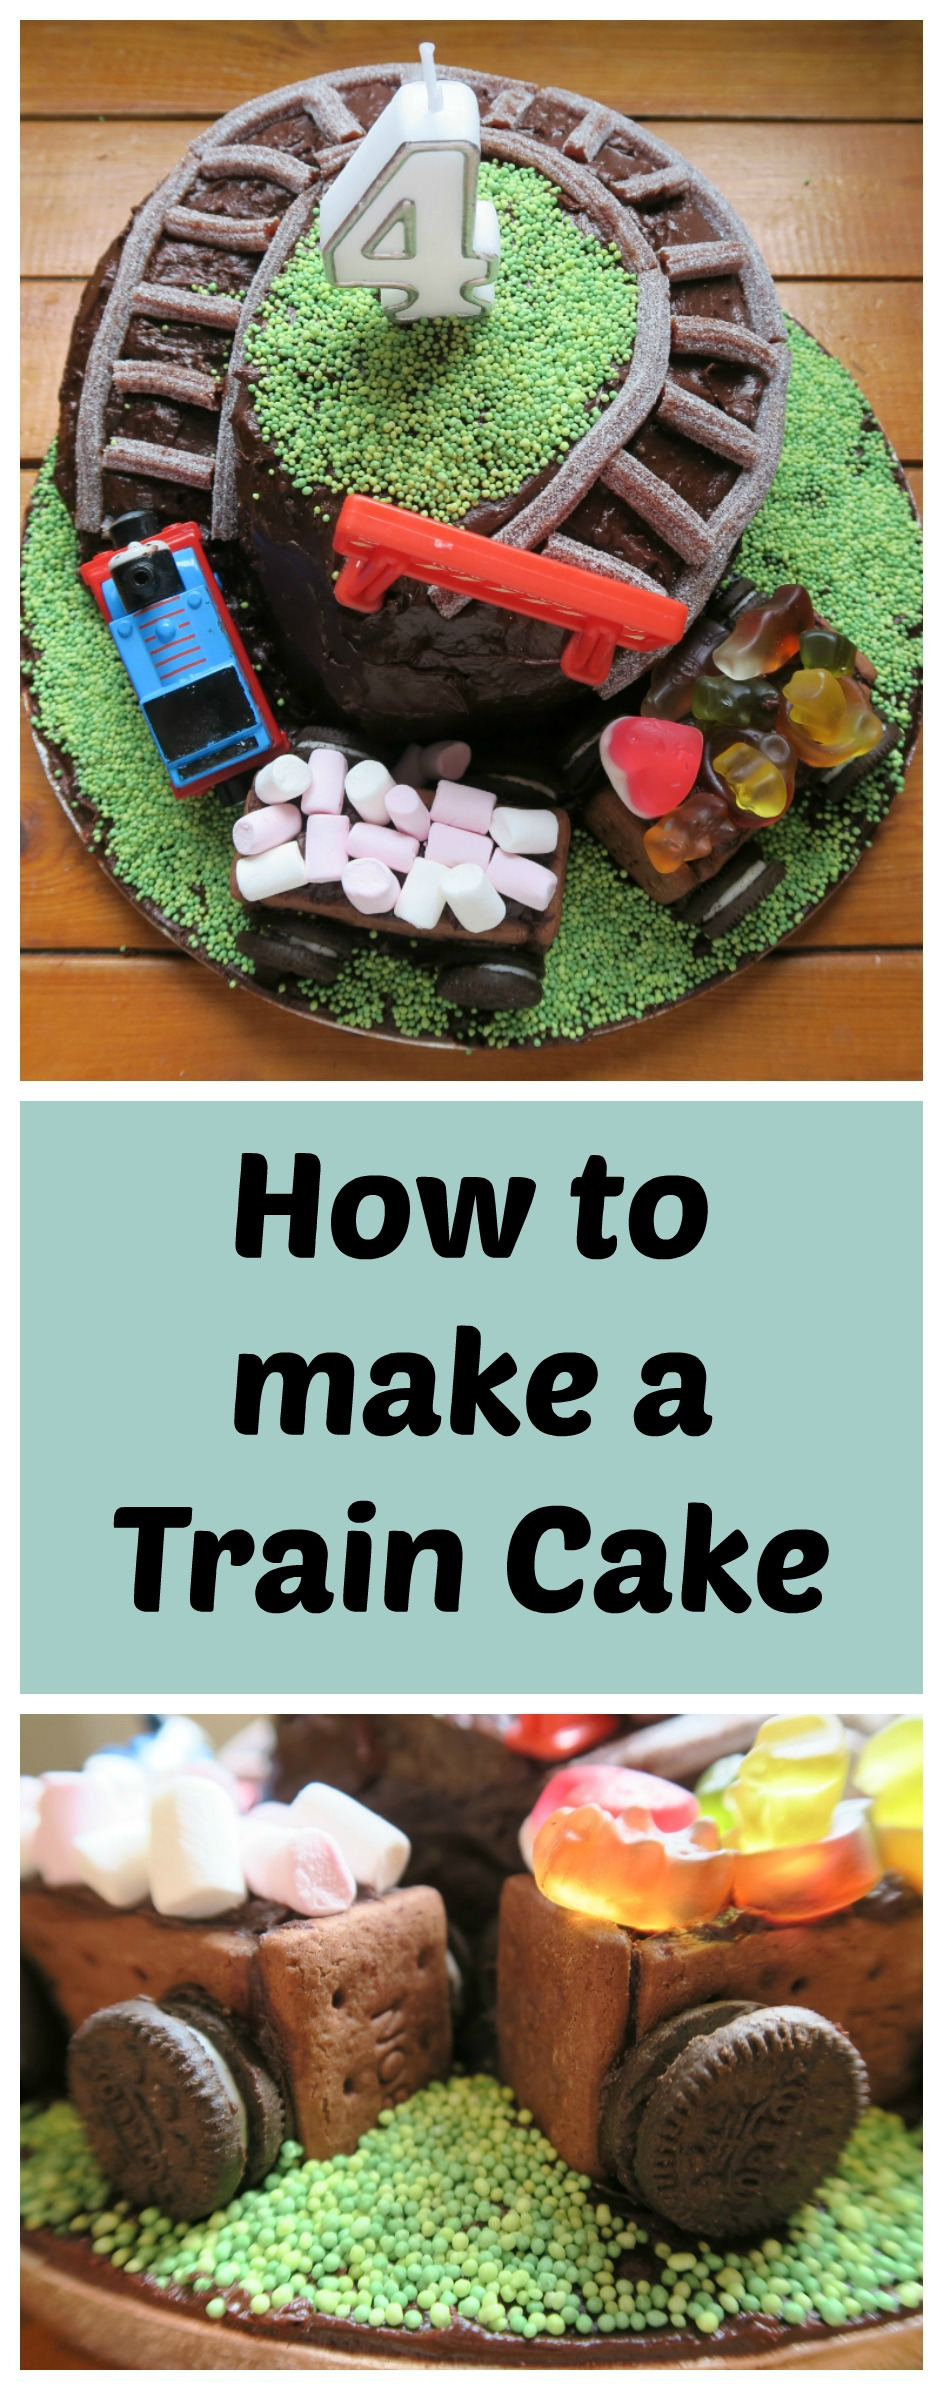 How To Make A Train Cake Your Child Will Love This Complete